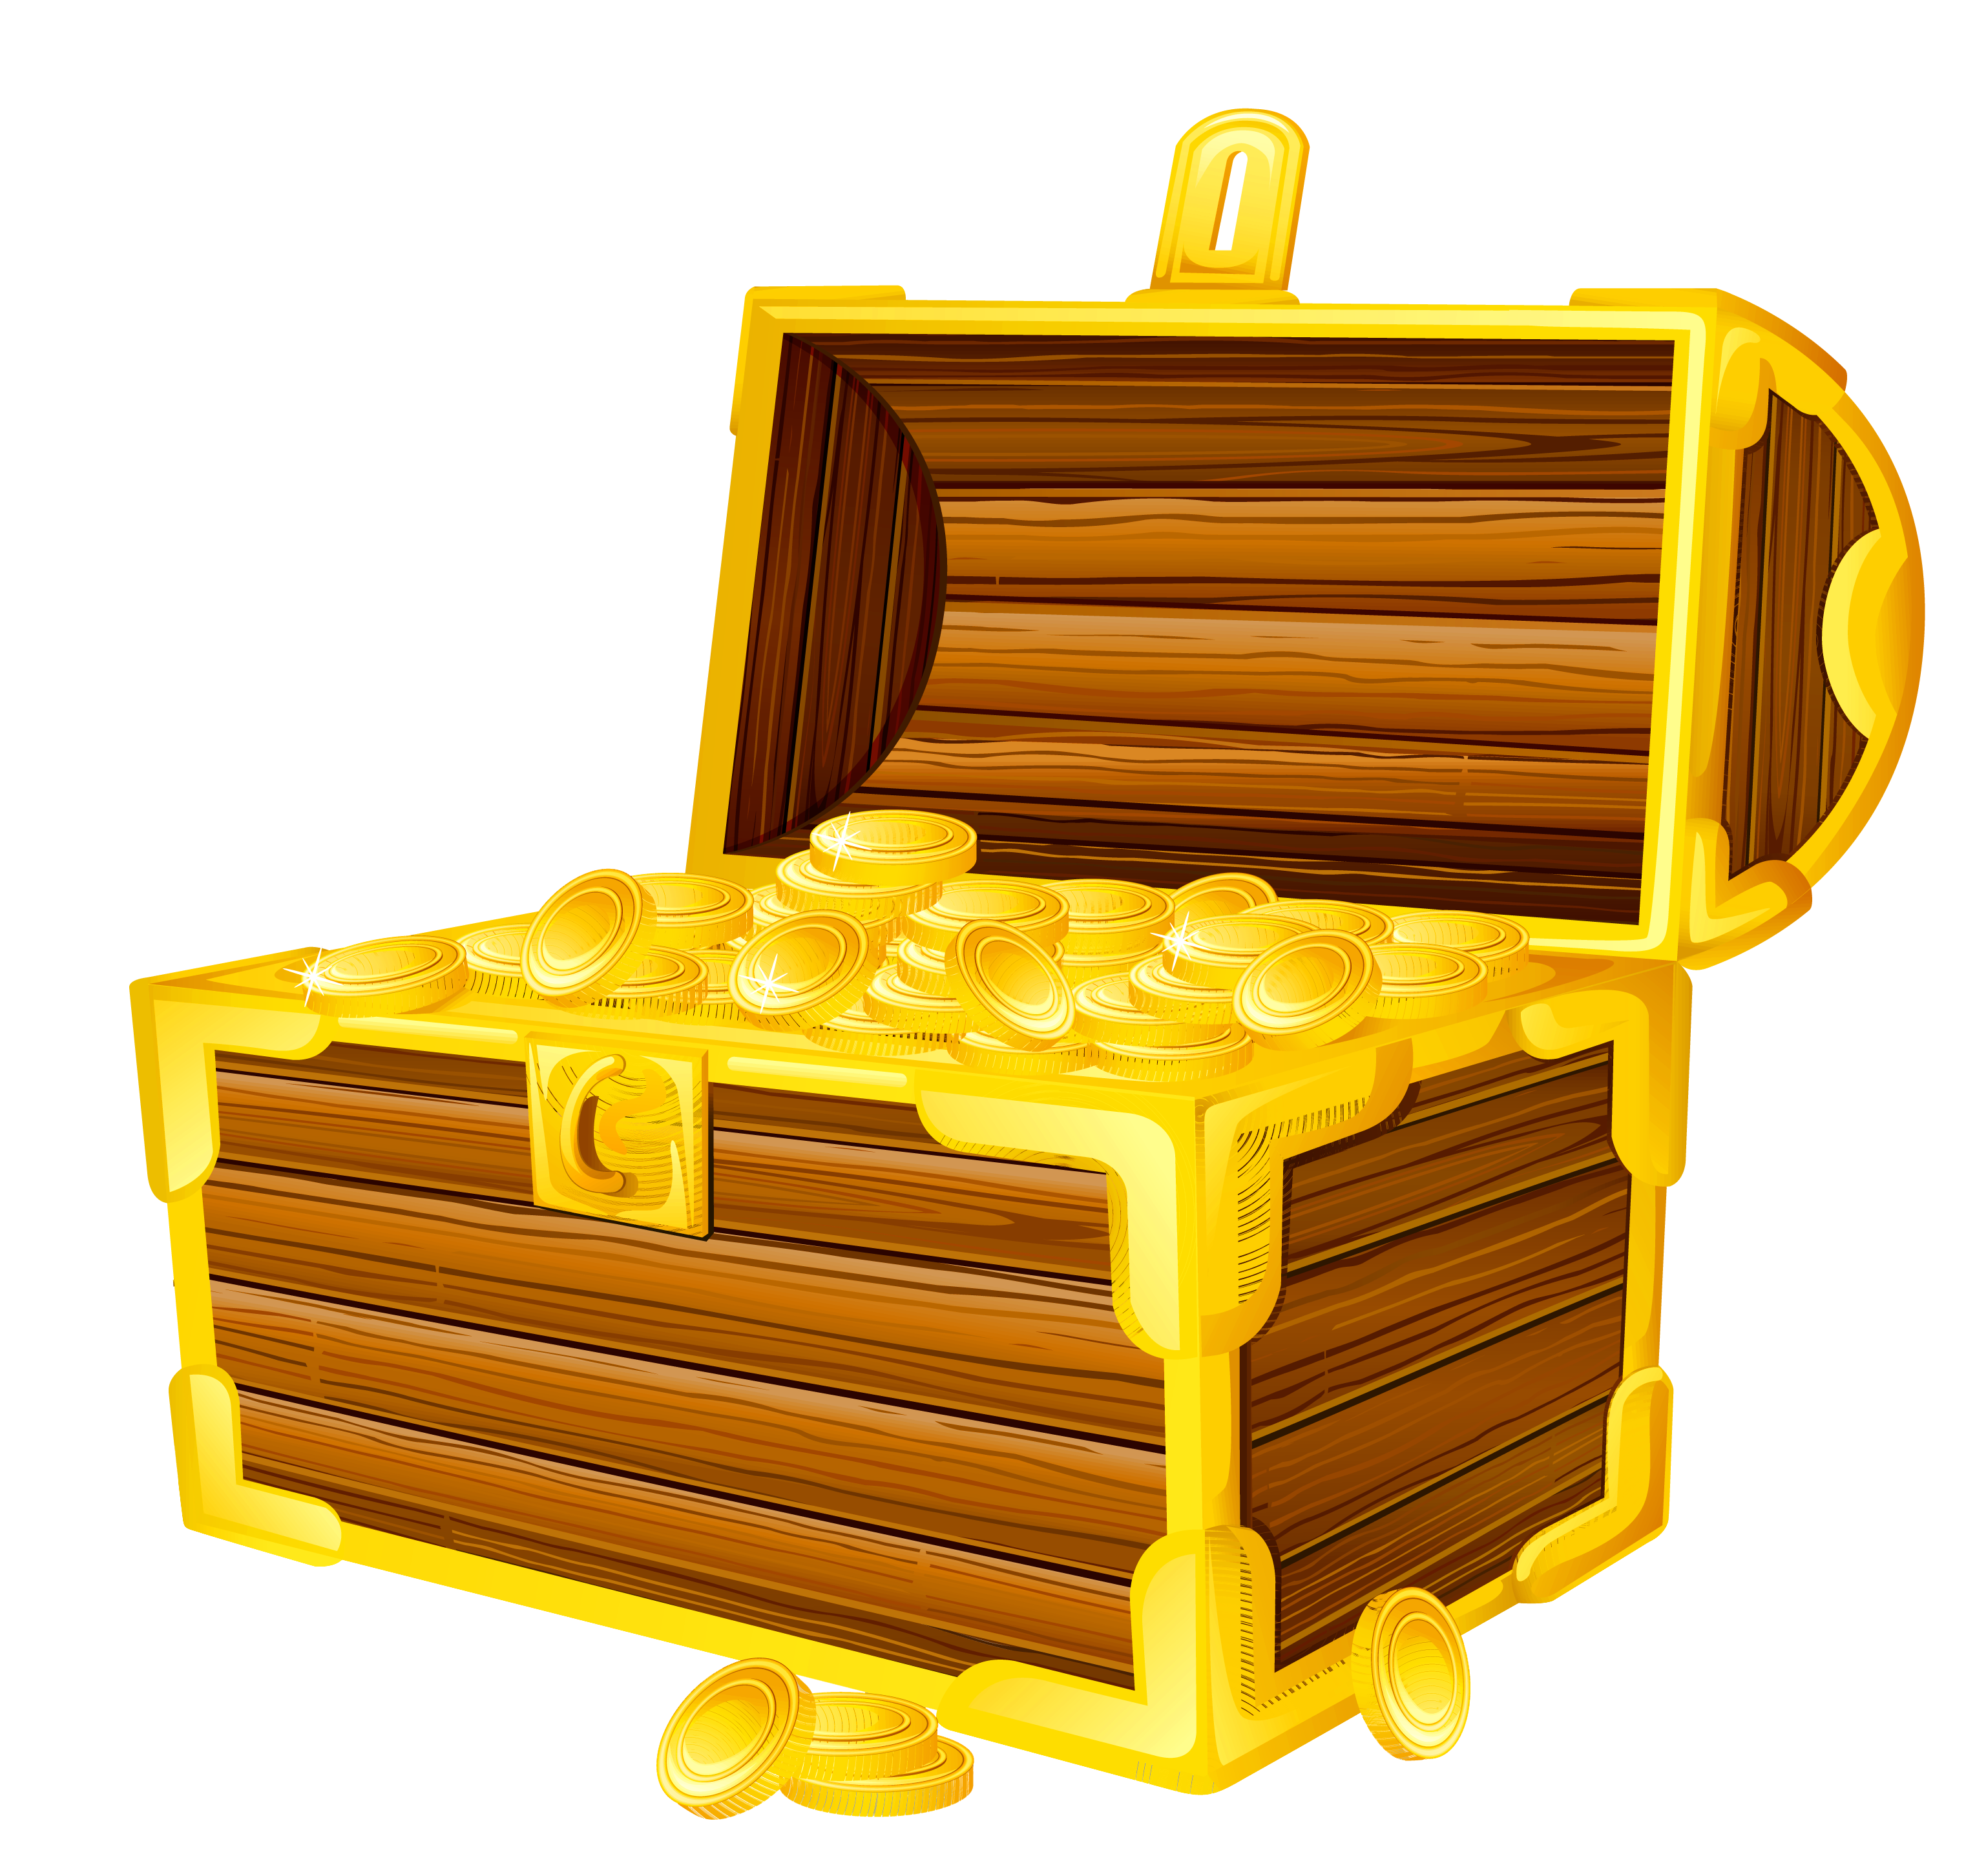 Pirate Treasure Chest PNG HD - 127740